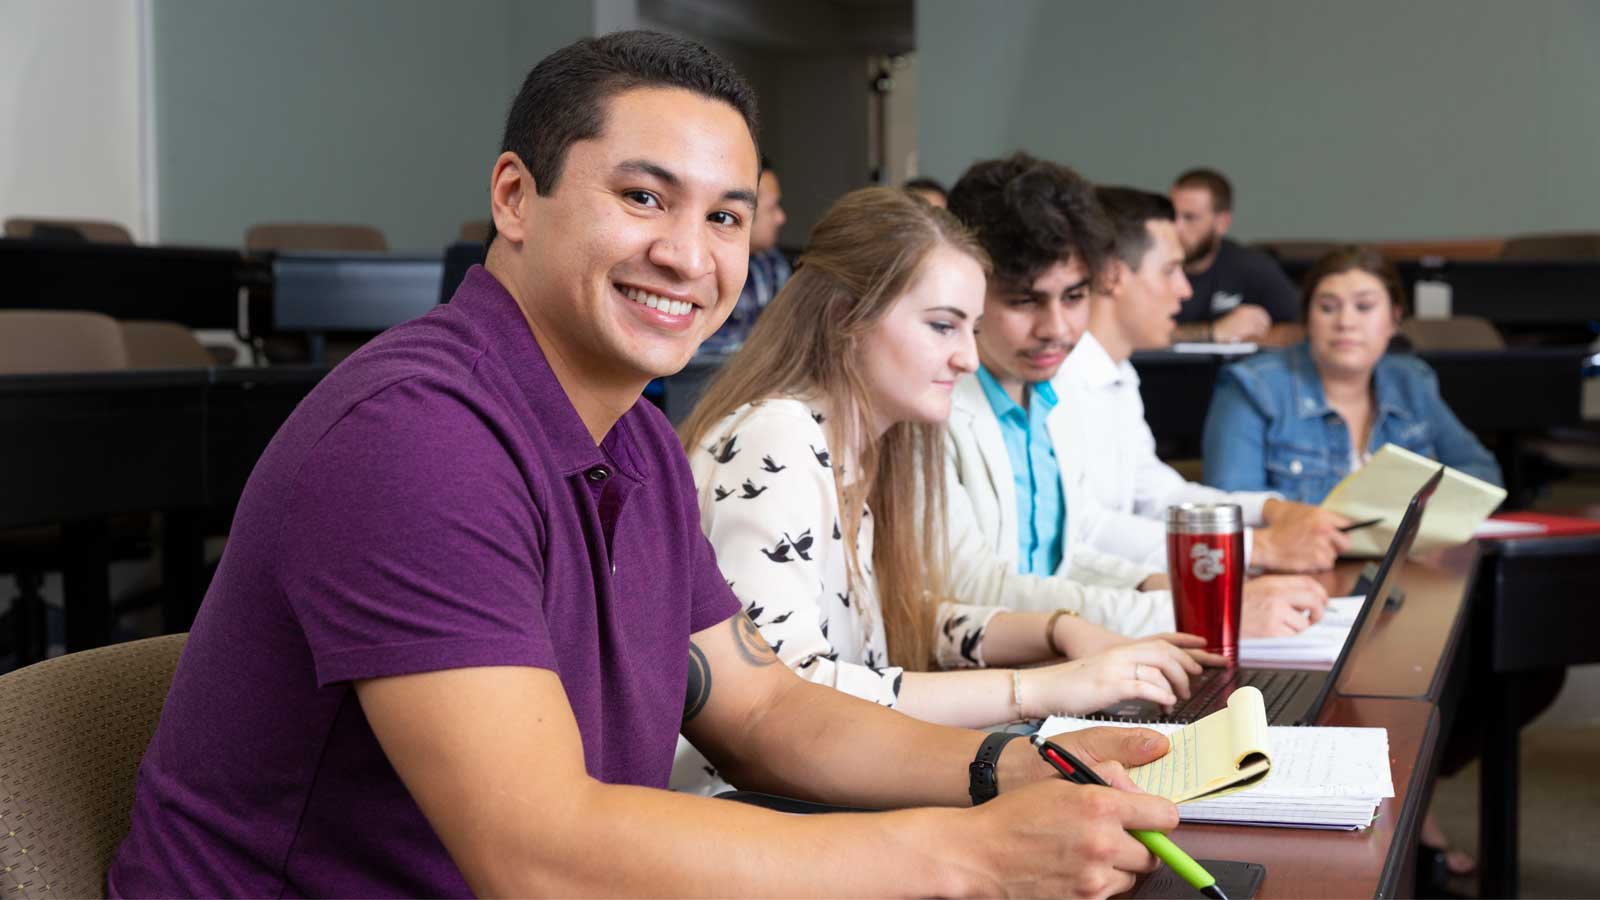 Fall 2019 Students: Find out how to complete your enrollment